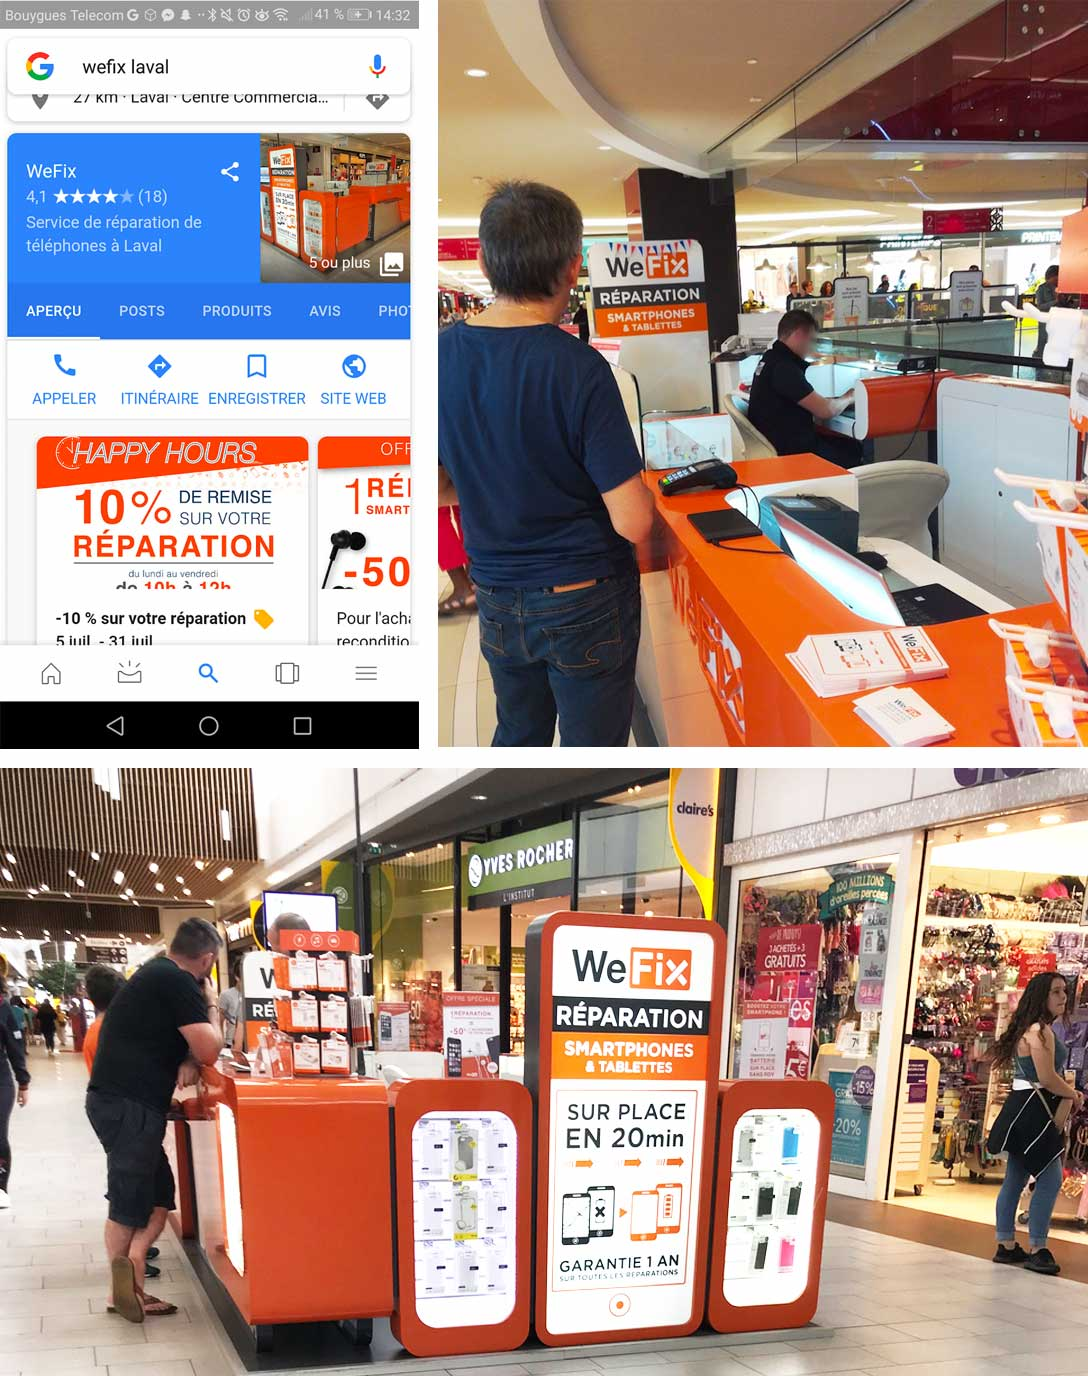 Customer case: our response to Fnac Darty's problem to evaluate the omnichannel experience provided by WeFix.